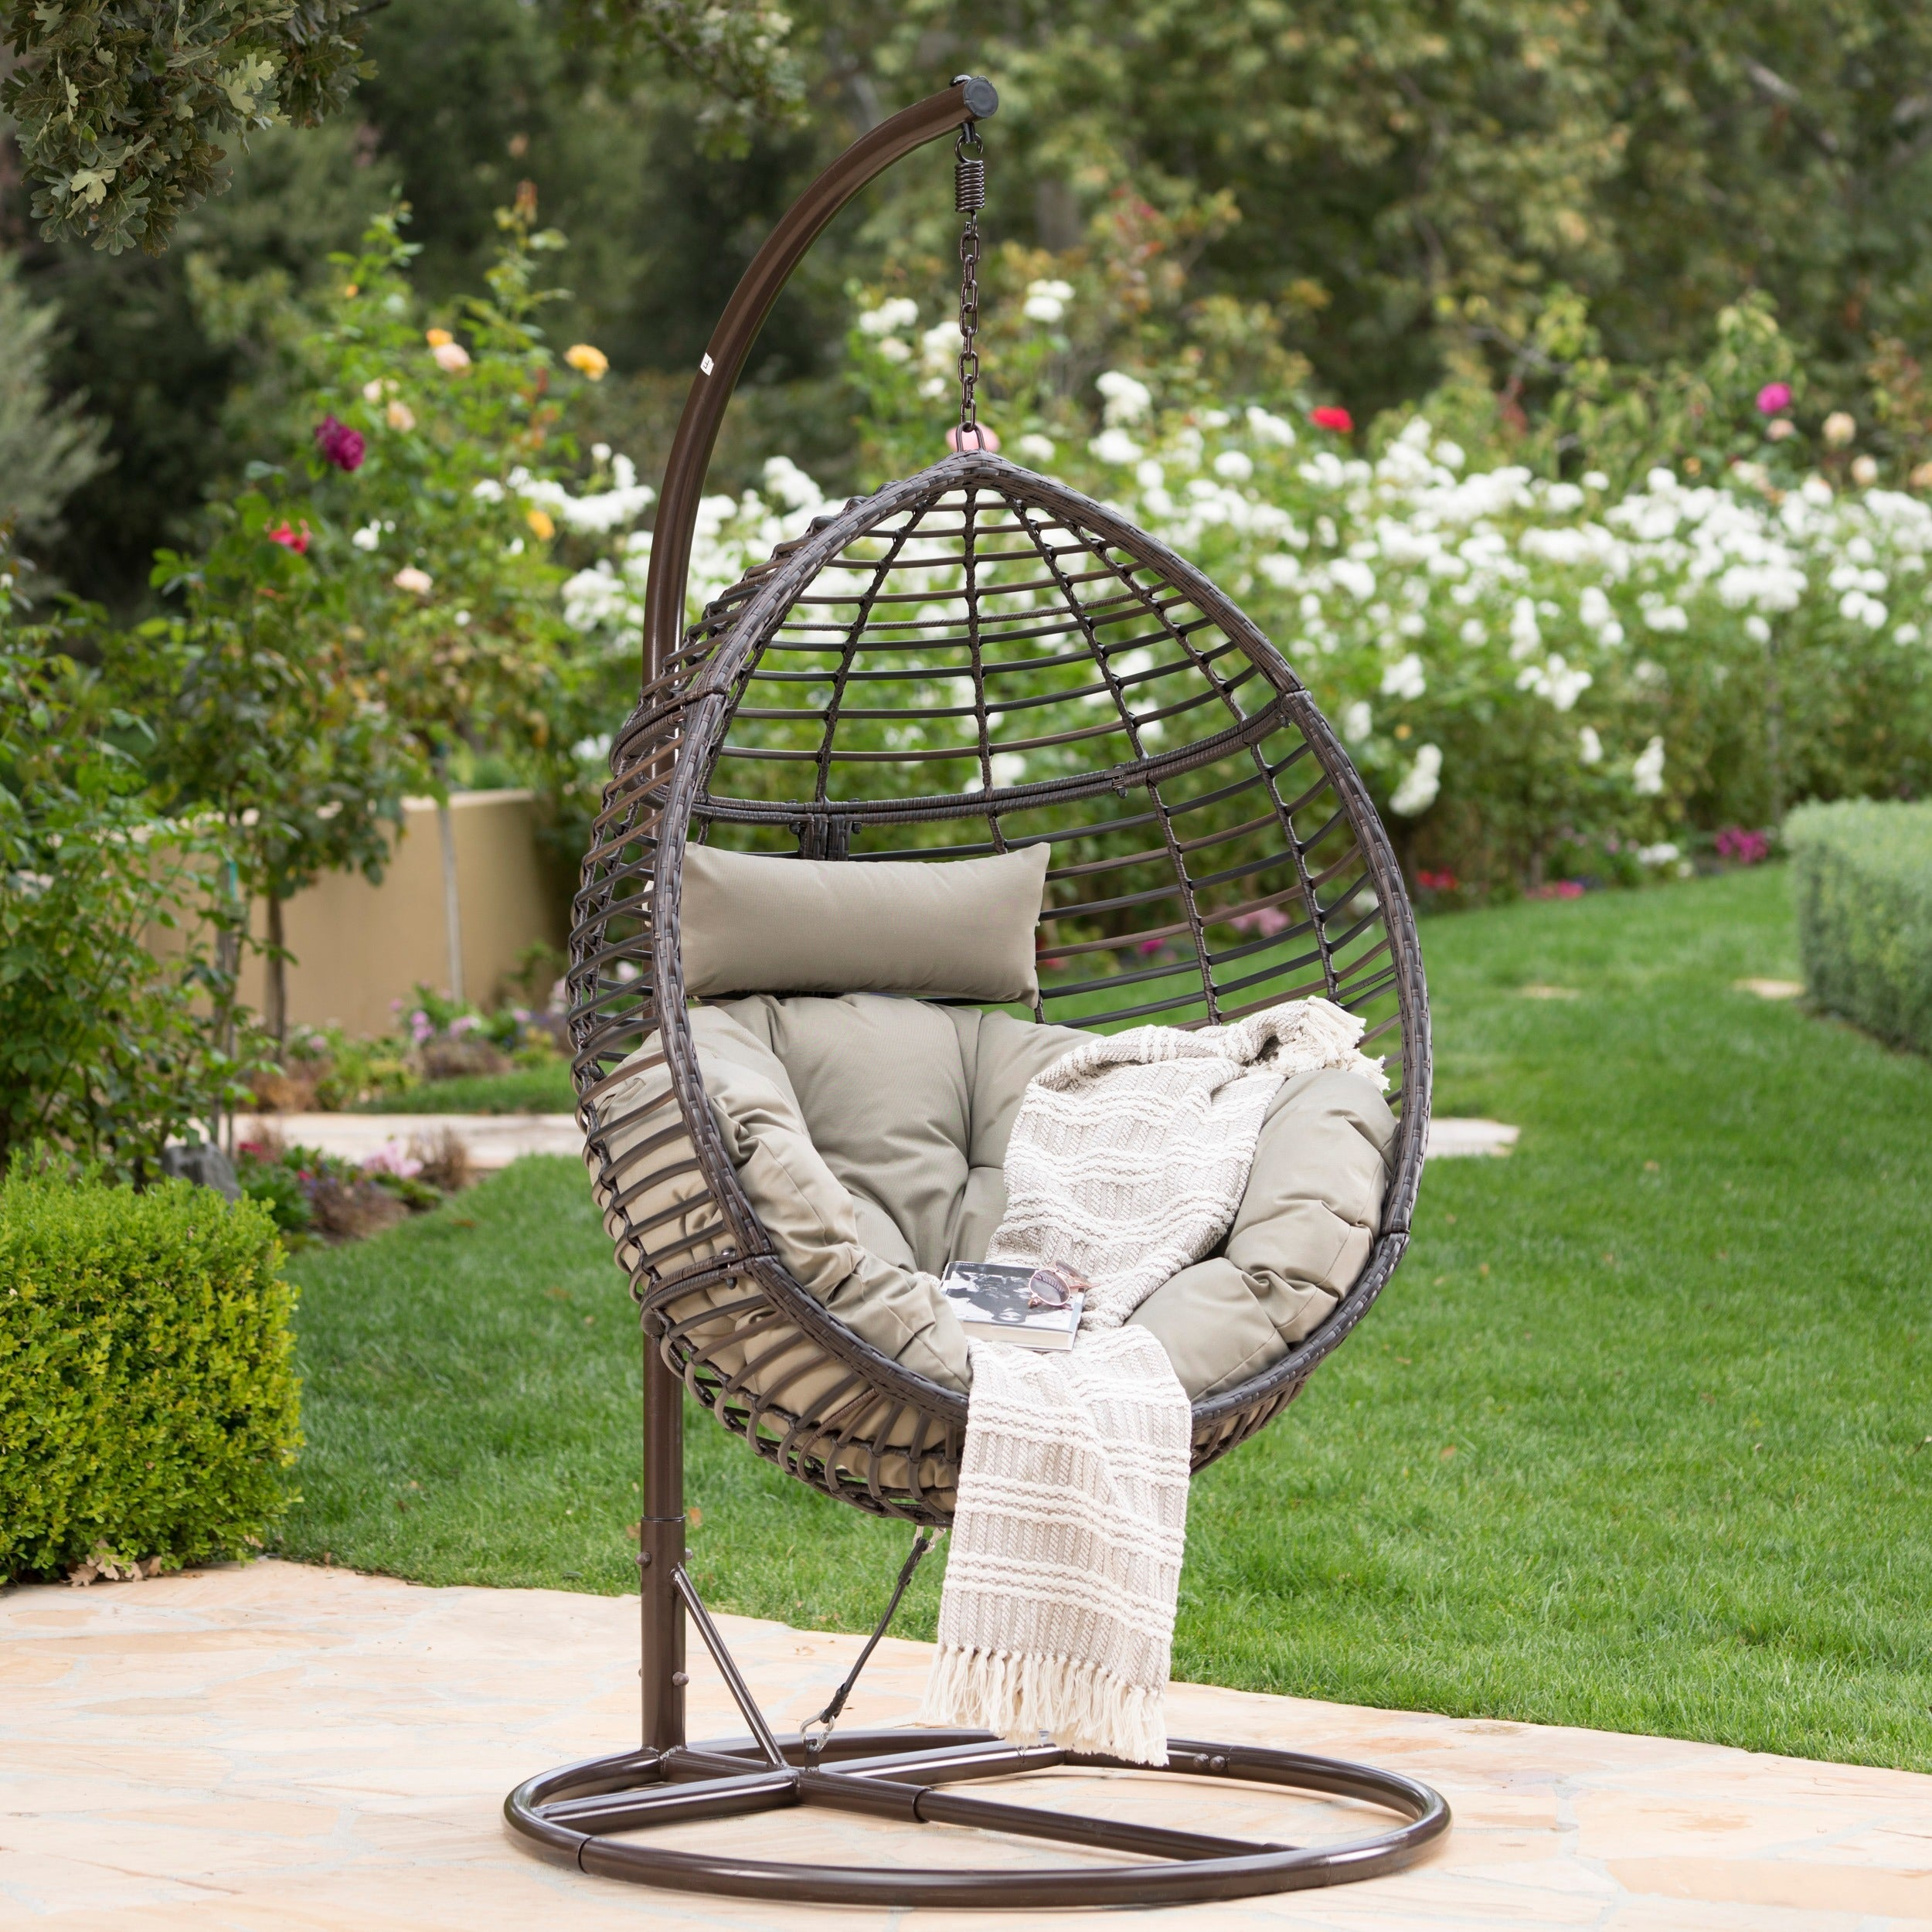 Layla Outdoor Wicker Hanging Basket Chair with Cushions by Christopher  Knight Home - Free Shipping Today - Overstock.com - 24006805